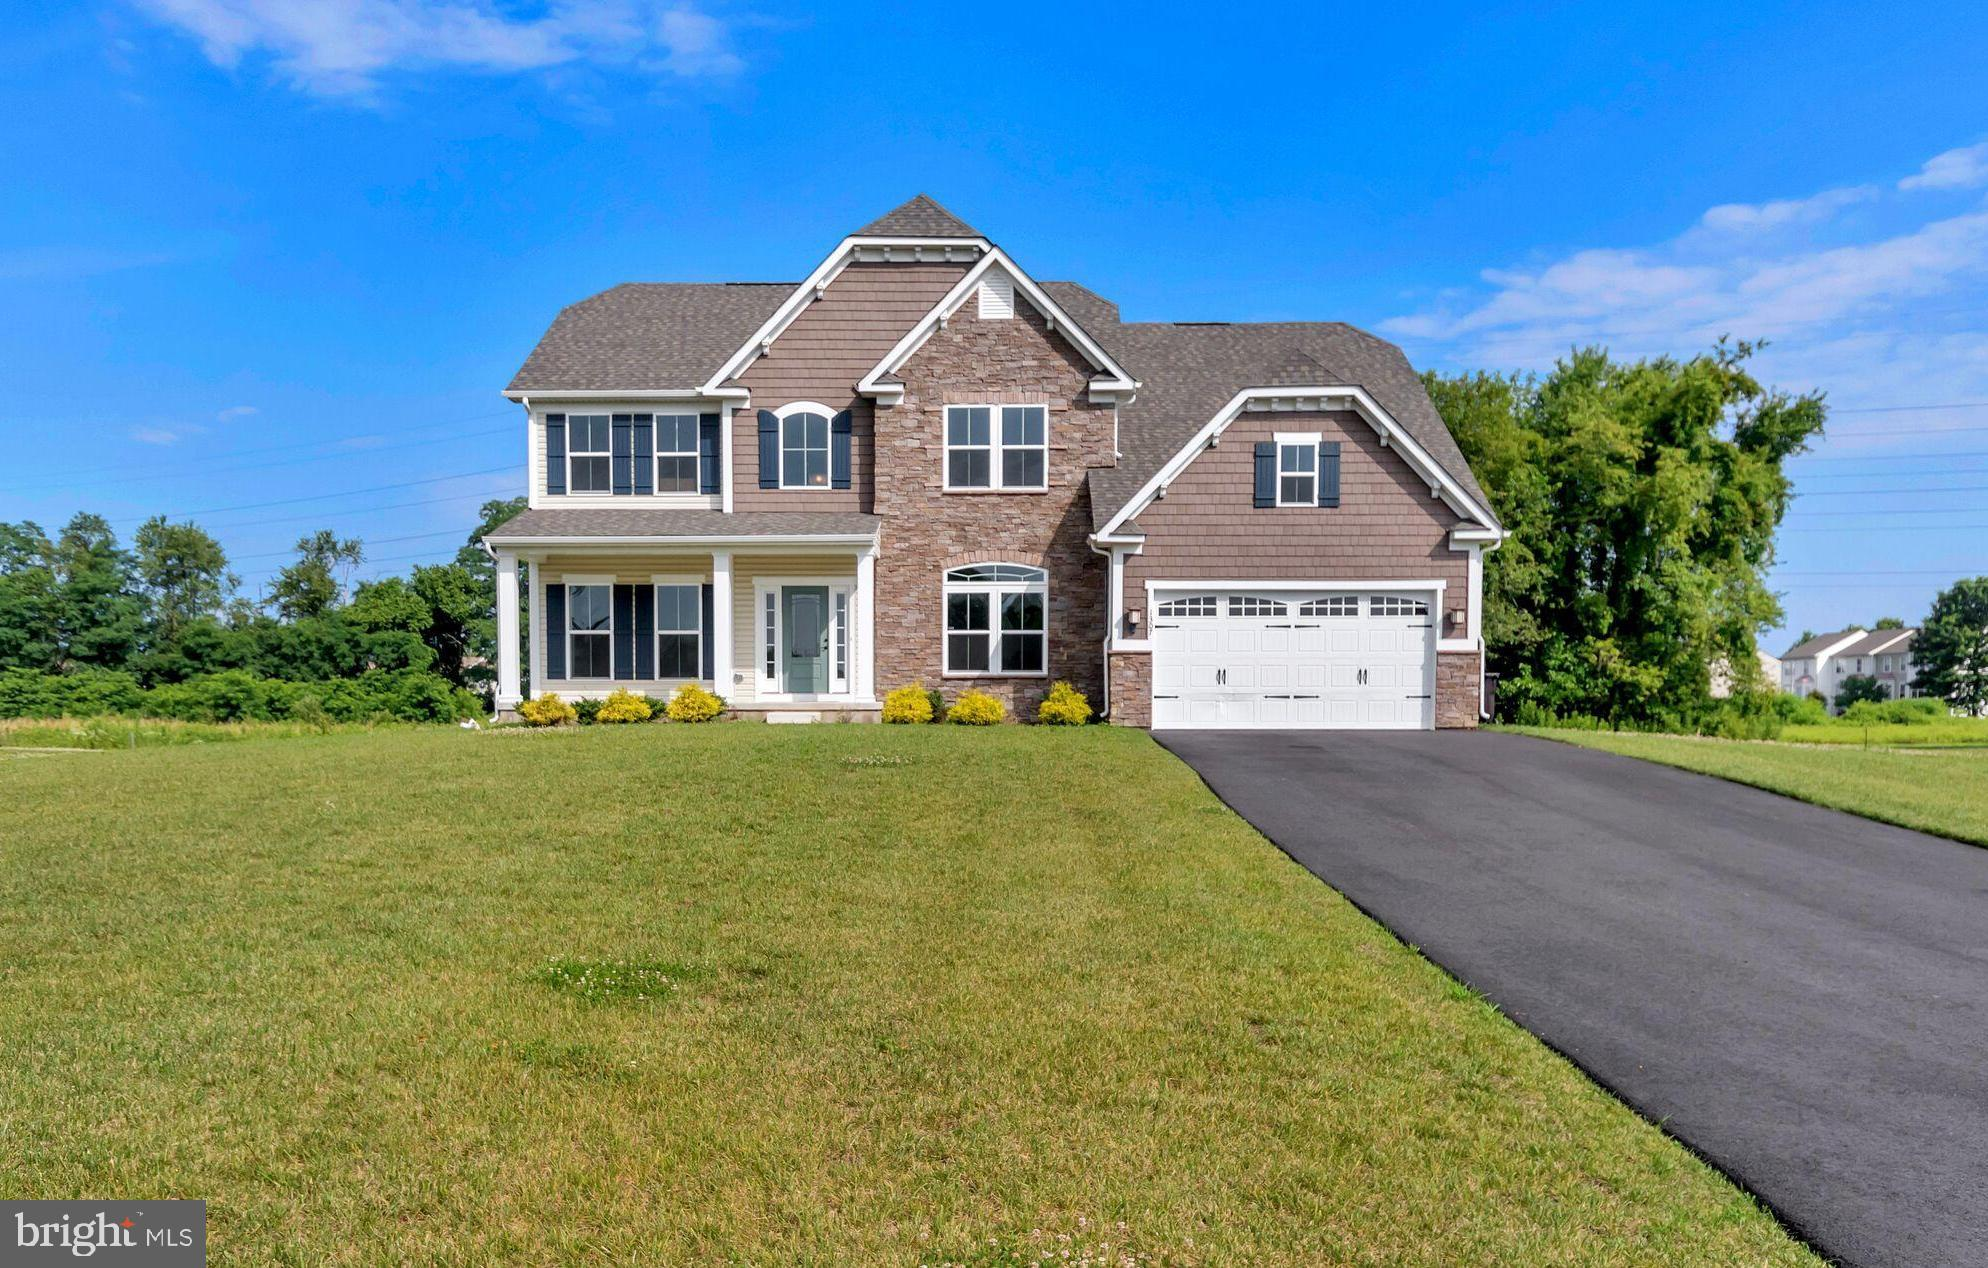 1307 PEAR TREE COURT, DELRAN, NJ 08075